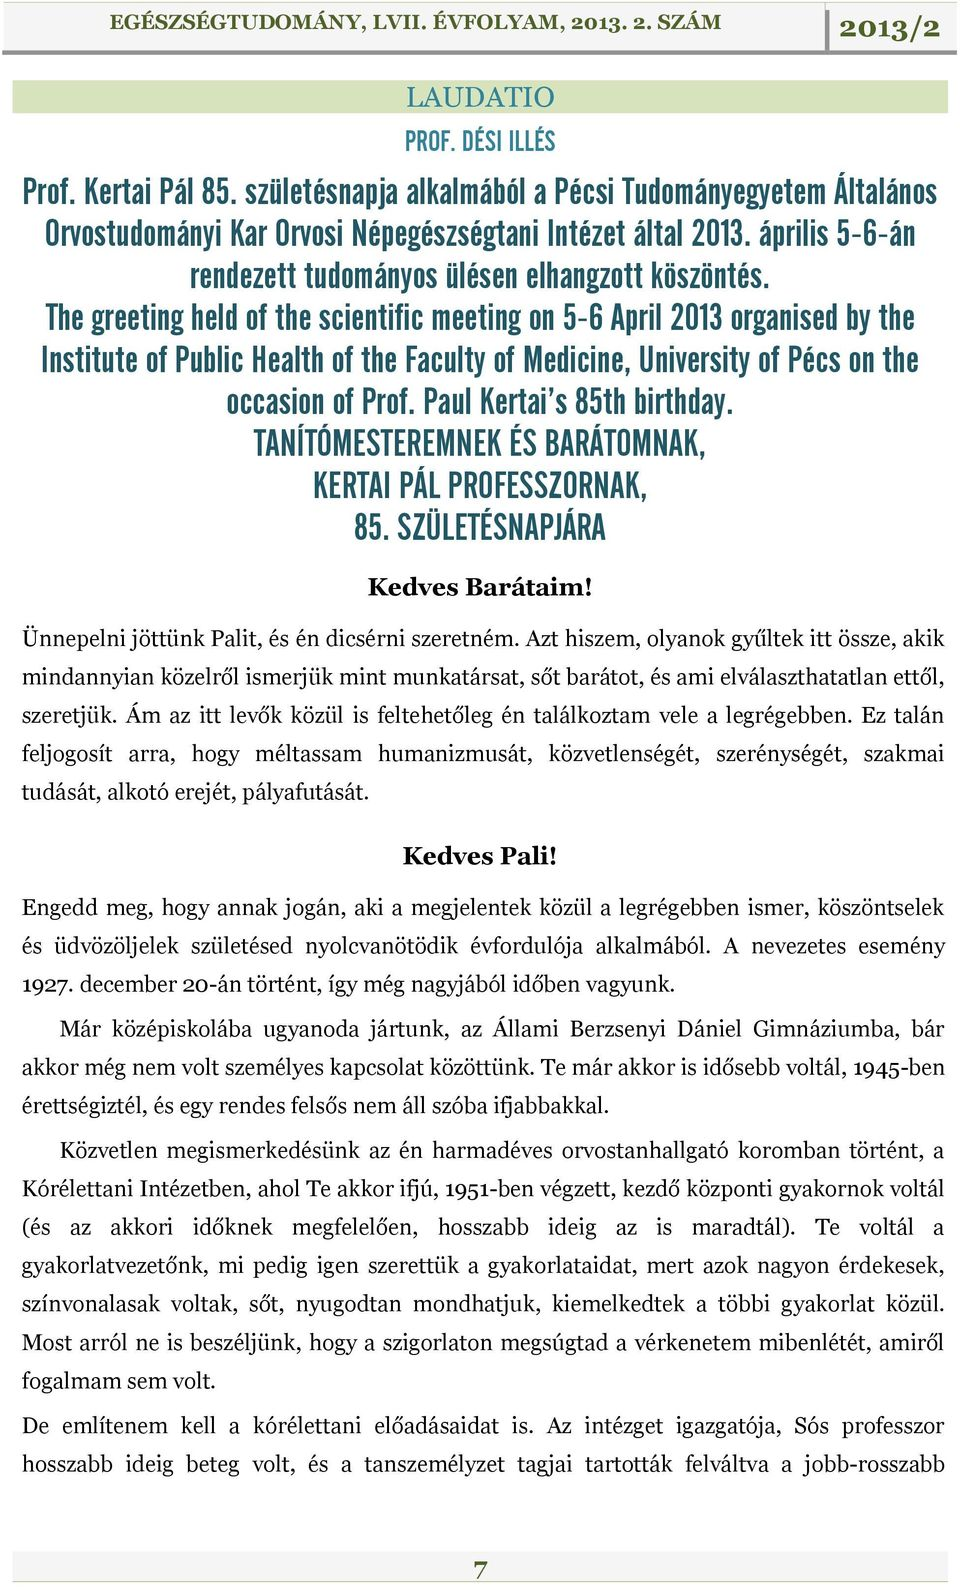 The greeting held of the scientific meeting on 5-6 April 2013 organised by the Institute of Public Health of the Faculty of Medicine, University of Pécs on the occasion of Prof.